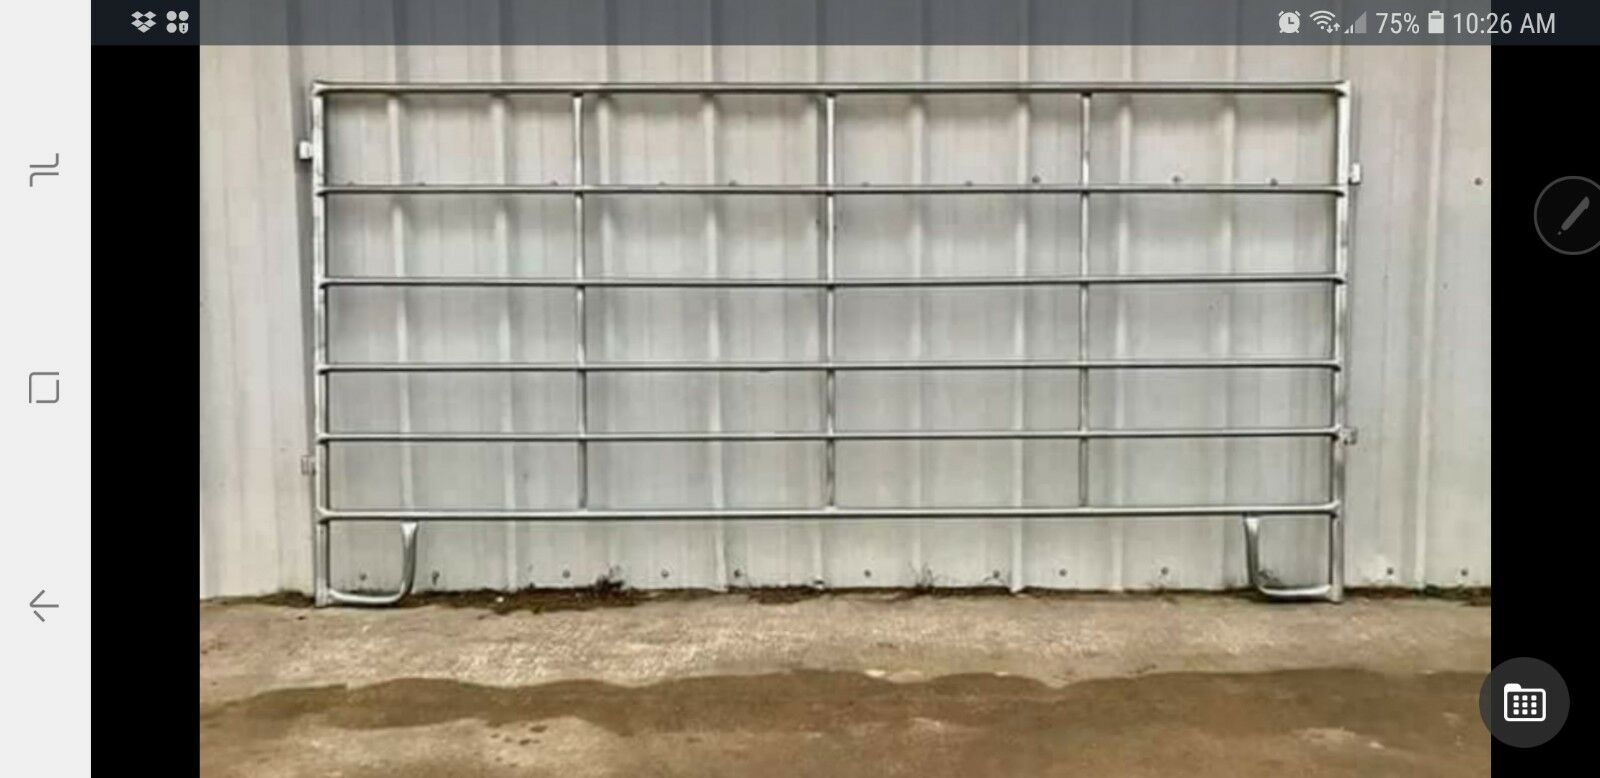 NEW 100' x 200' Team Roping  Arena Corral Catch and Holding Pens Roping Boxes  limited edition